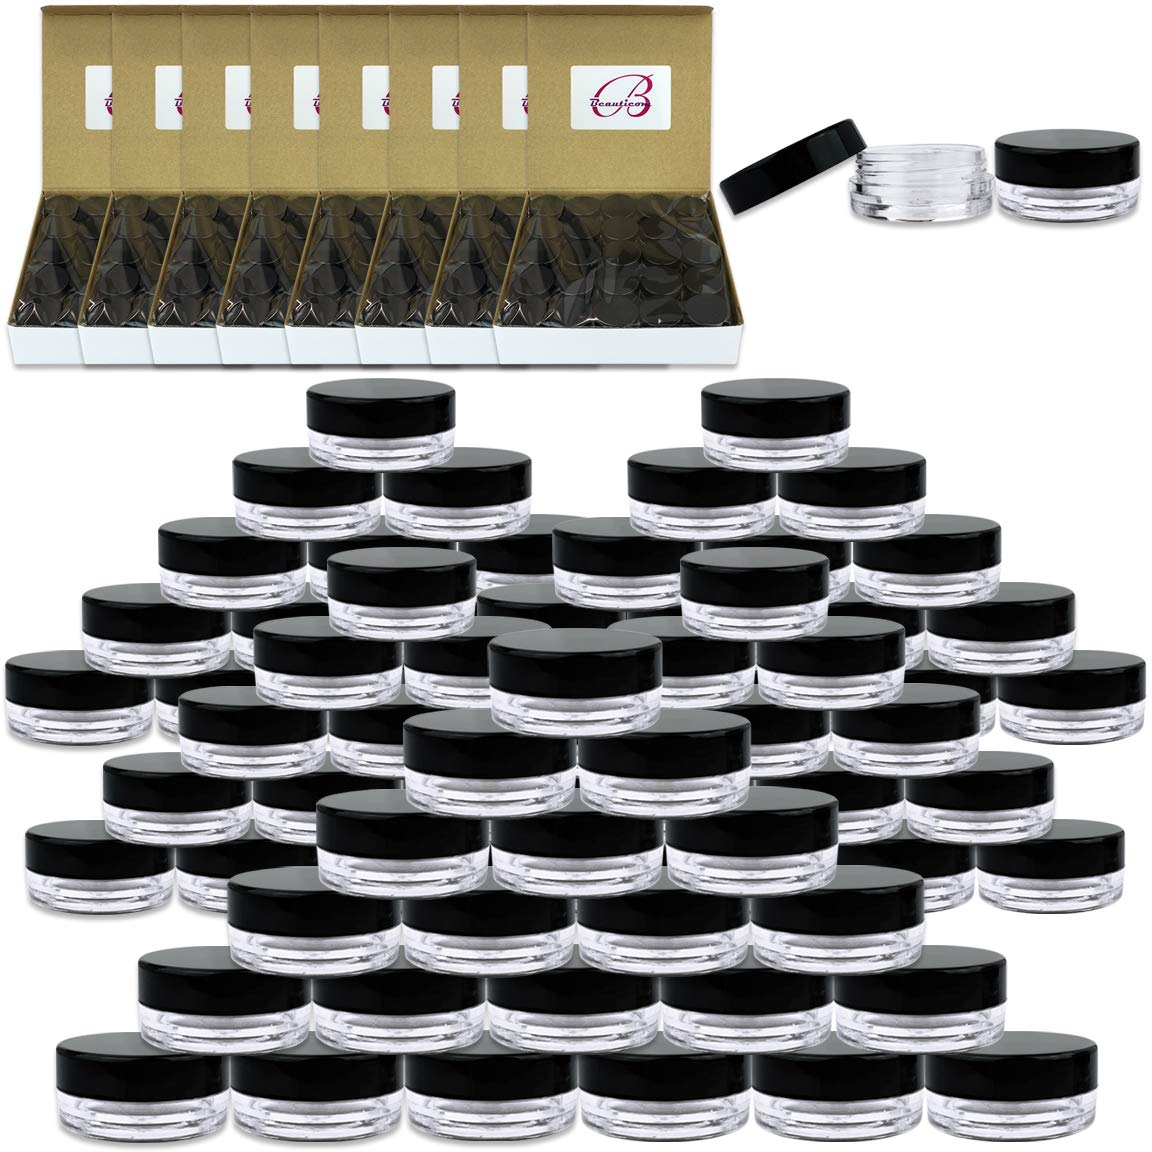 Beauticom 3G/3ML Round Clear Jars with Black Lids for Small Jewelry, Holding/Mixing Paints, Art Accessories and Other Craft Supplies - BPA Free (Quantity: 1000pcs)